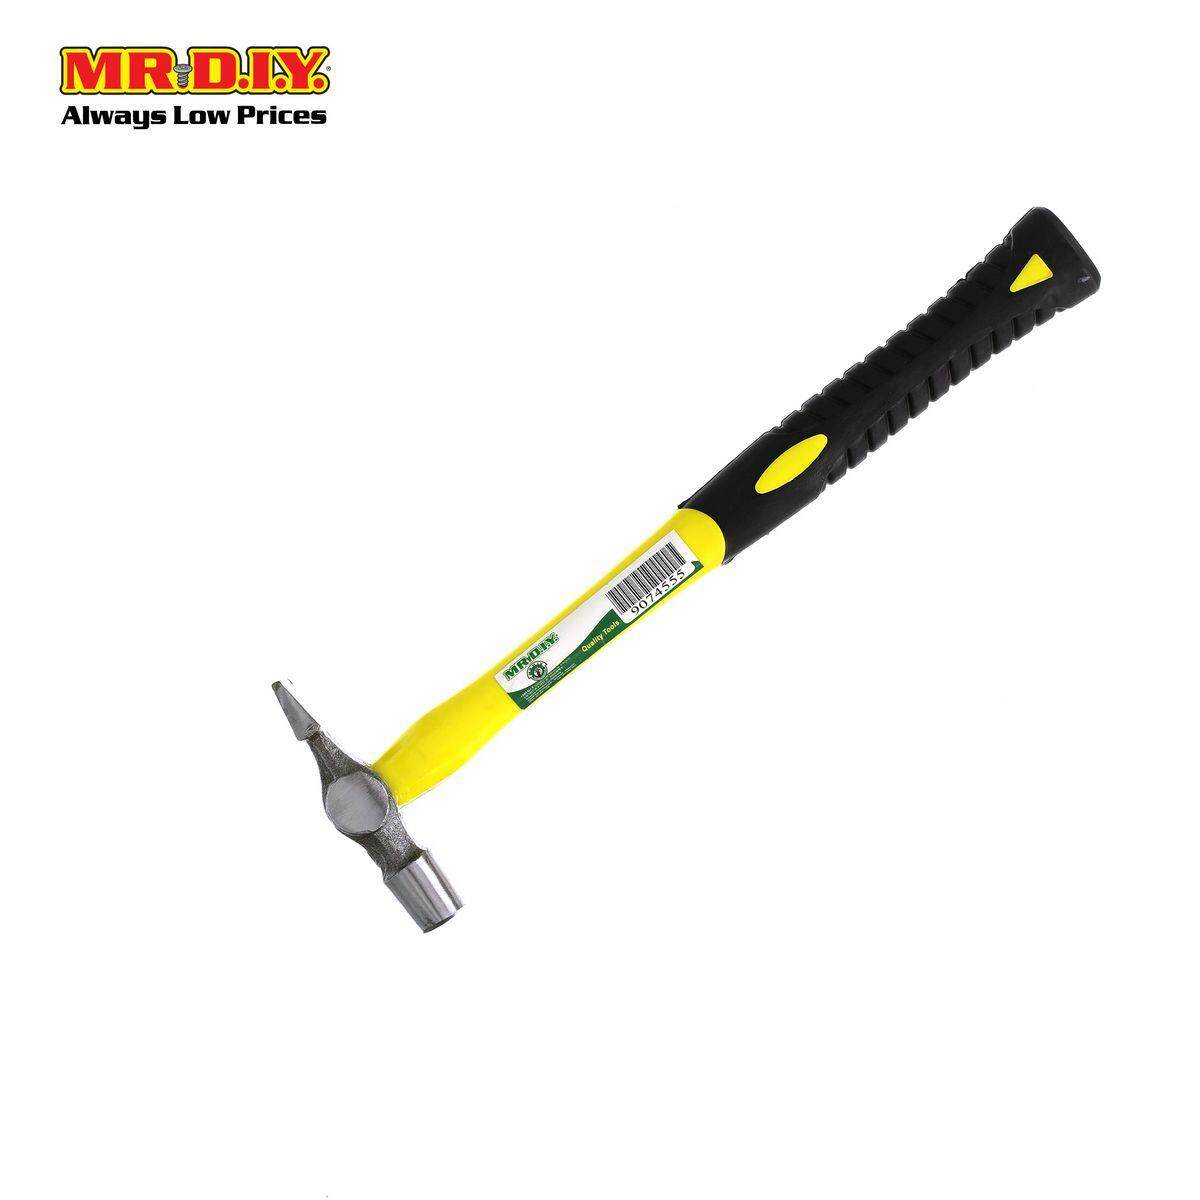 MR.DIY Cross Pein Pin Hammer 14mm